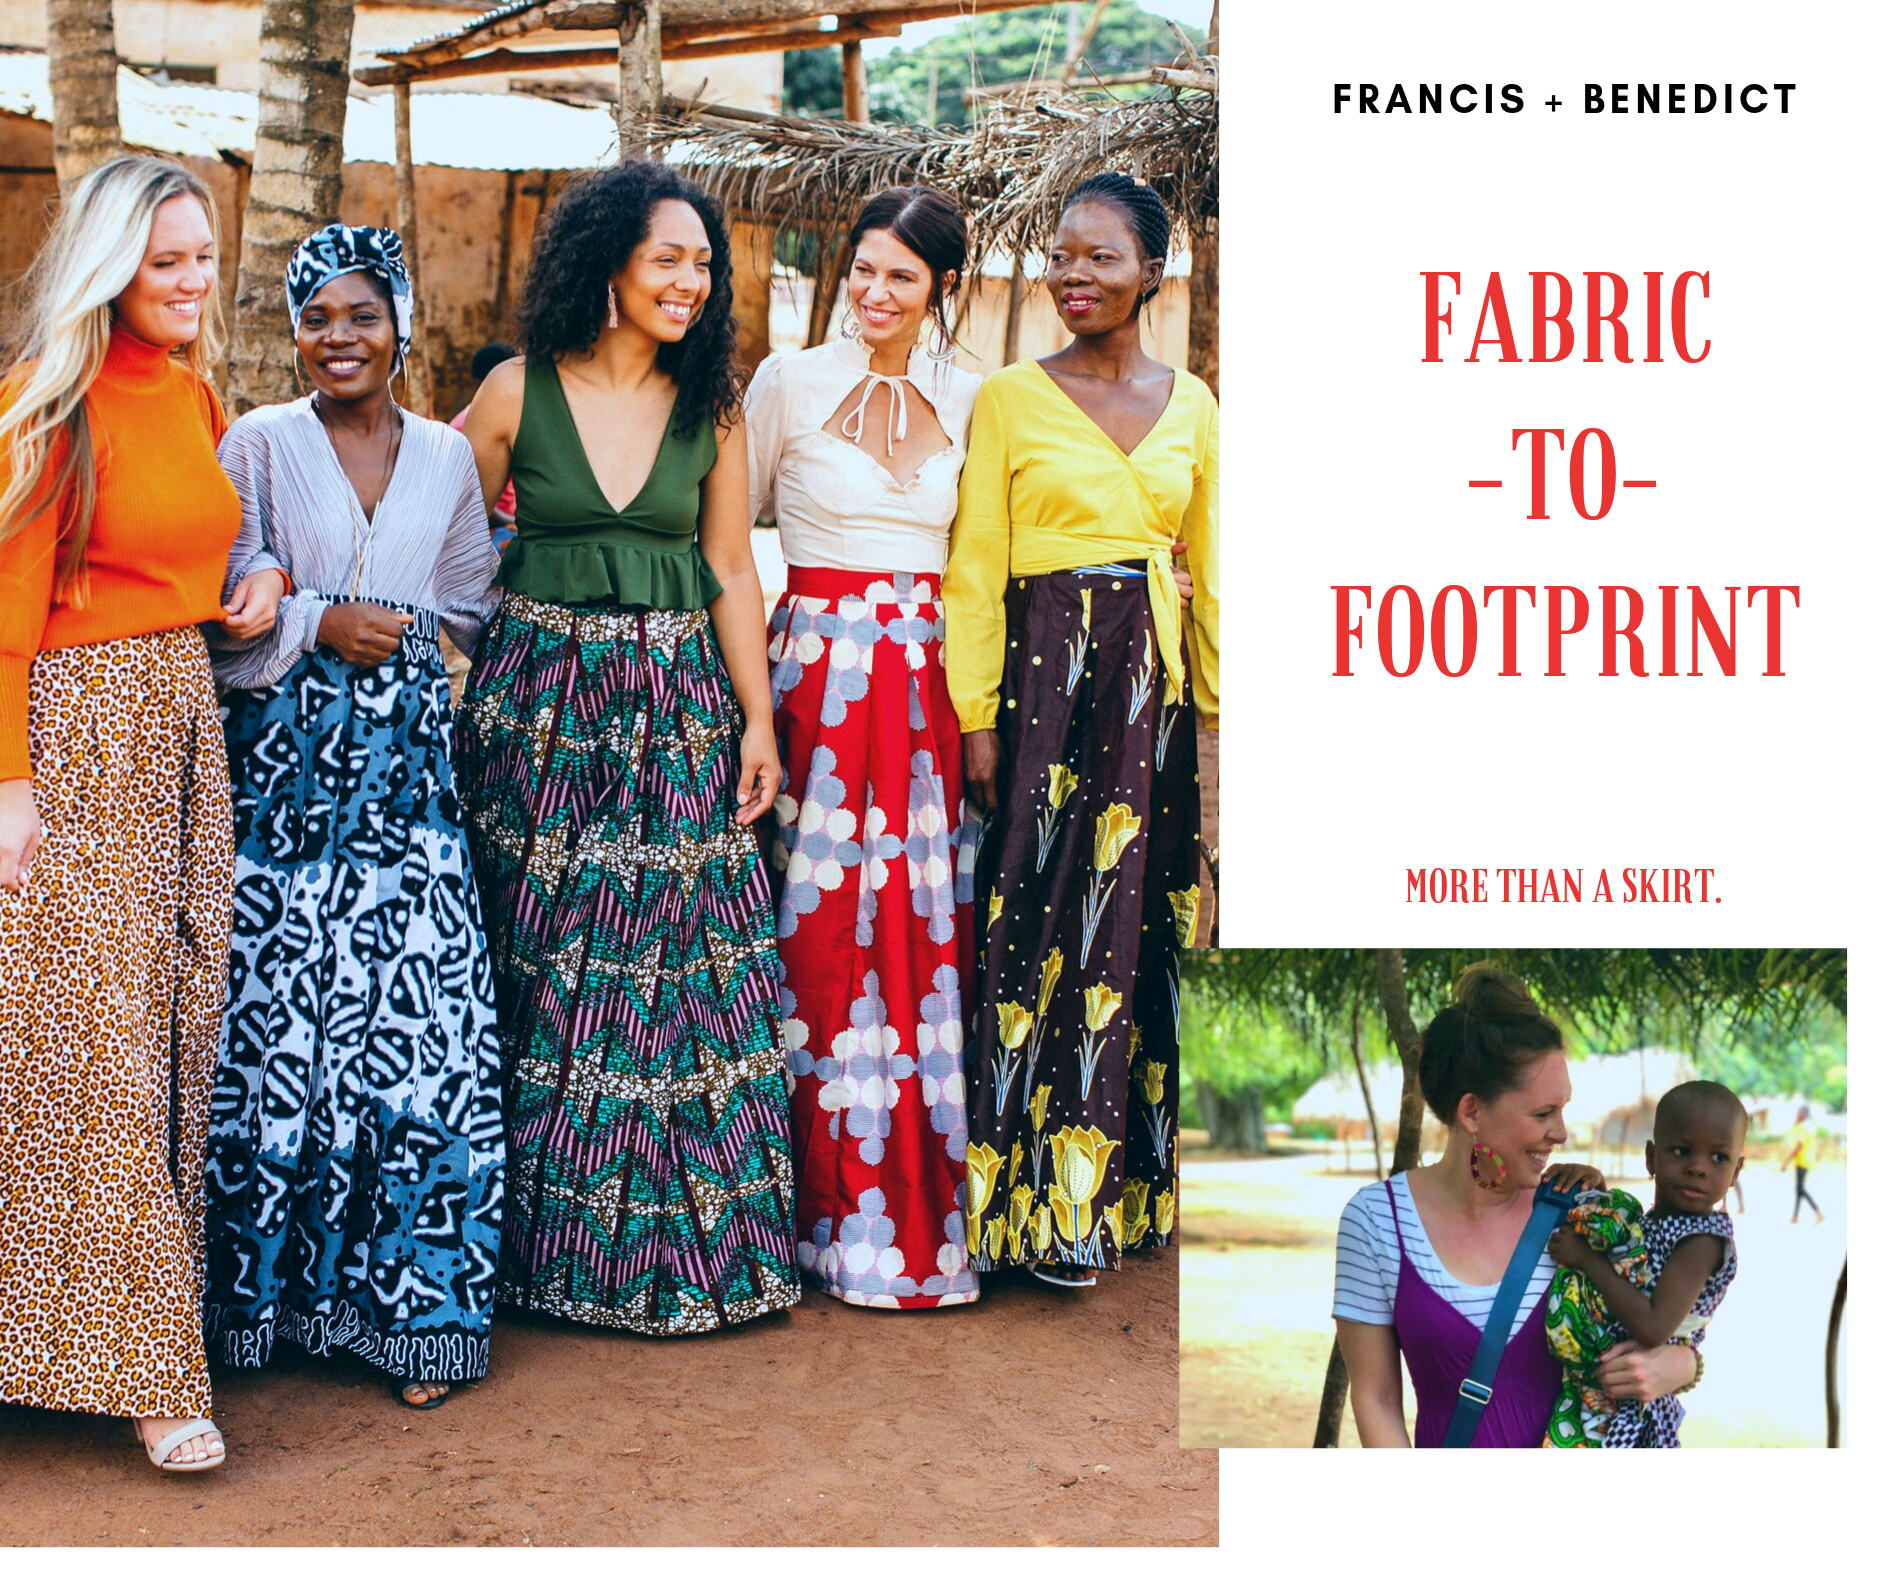 Fabric -To- Symbolic  The Skirt. copy 7.png